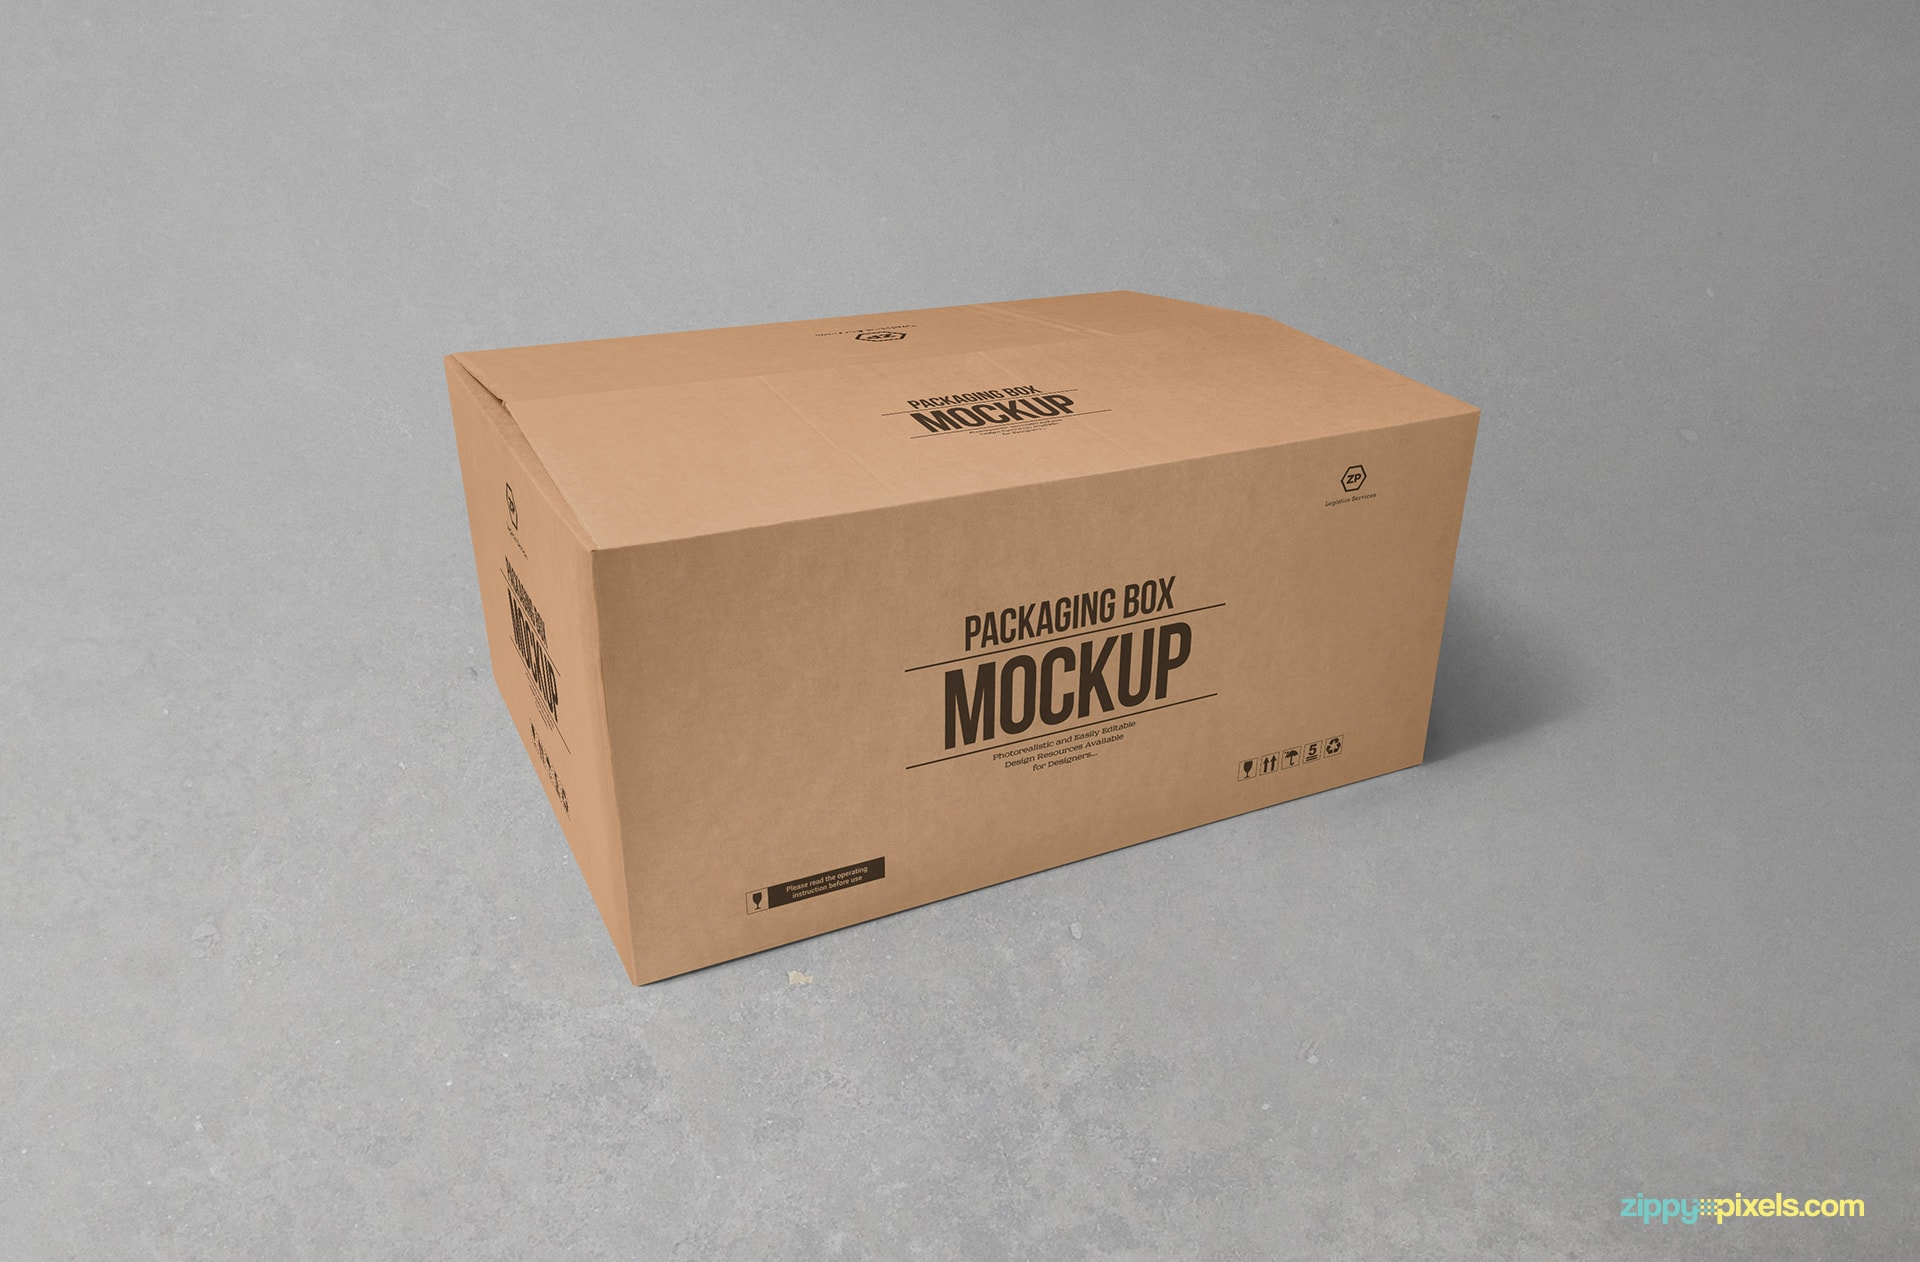 cardboard-packaging-box-mockup-closed-side-view